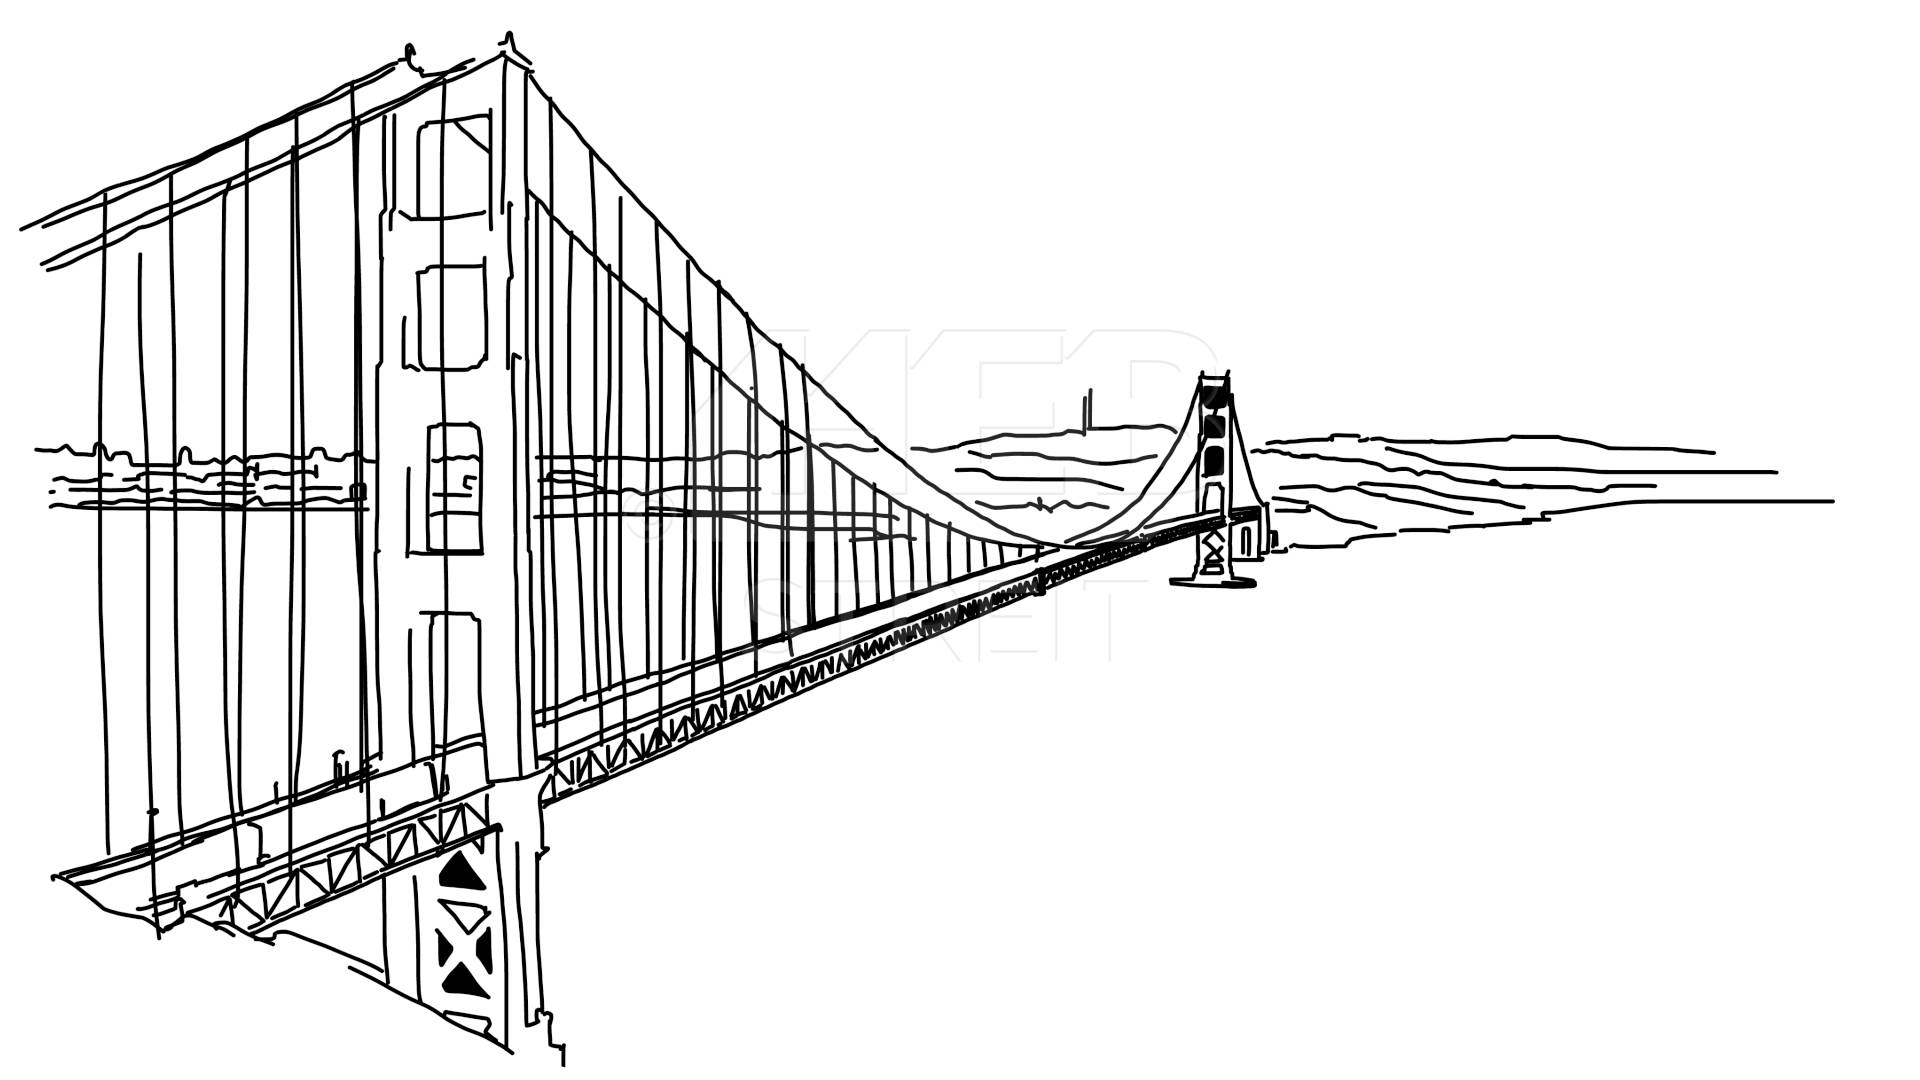 Drawn bulding  street scene Bridge Sketch Gate  Gate